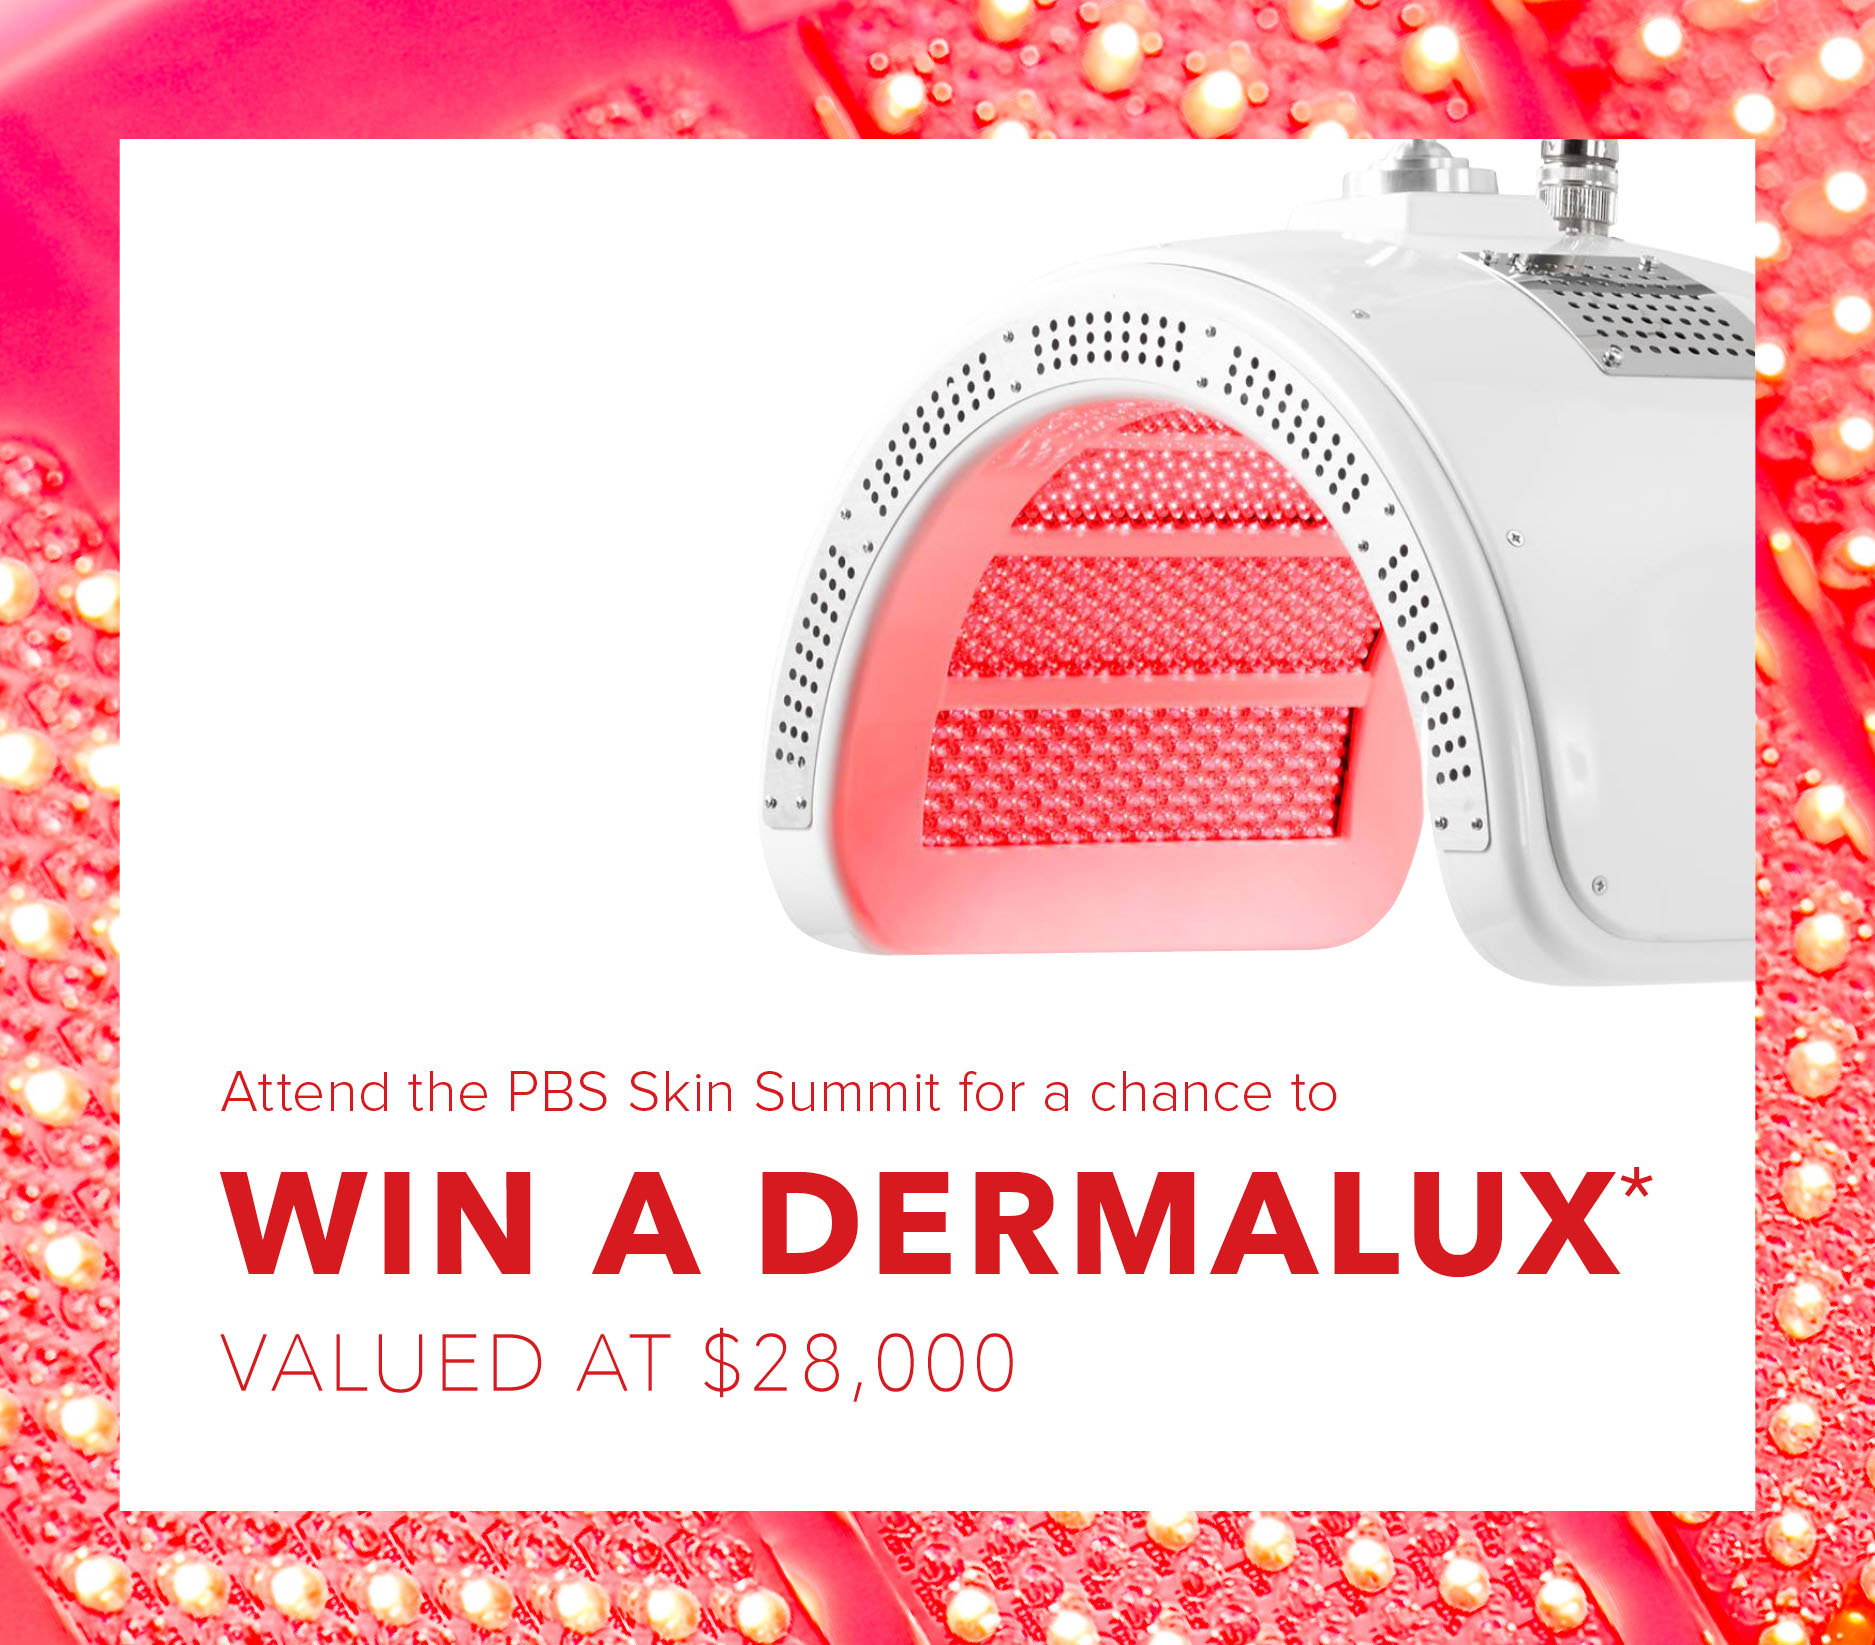 PBS Skin Summit Win Dermalux V21.jpg